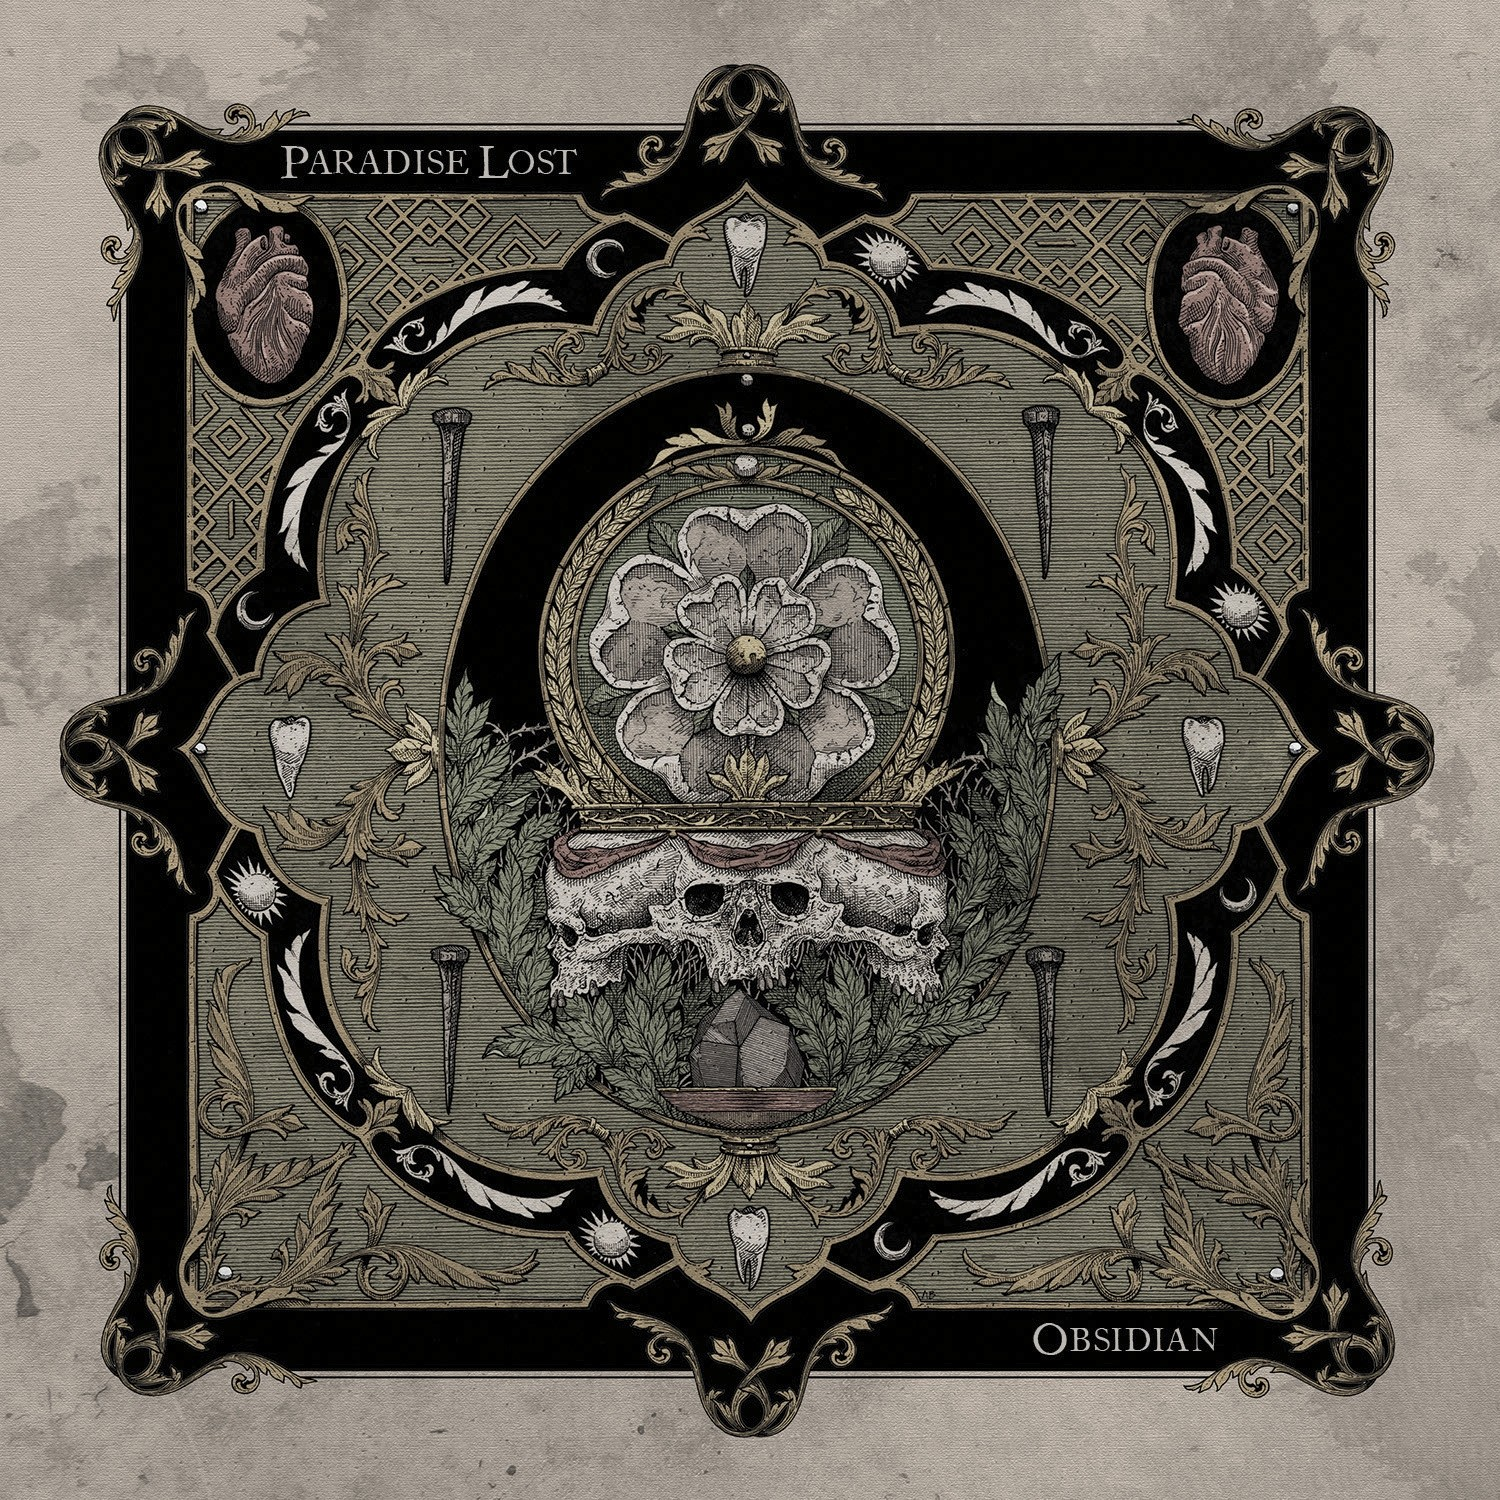 Paradise Lost - Obsidian - CD